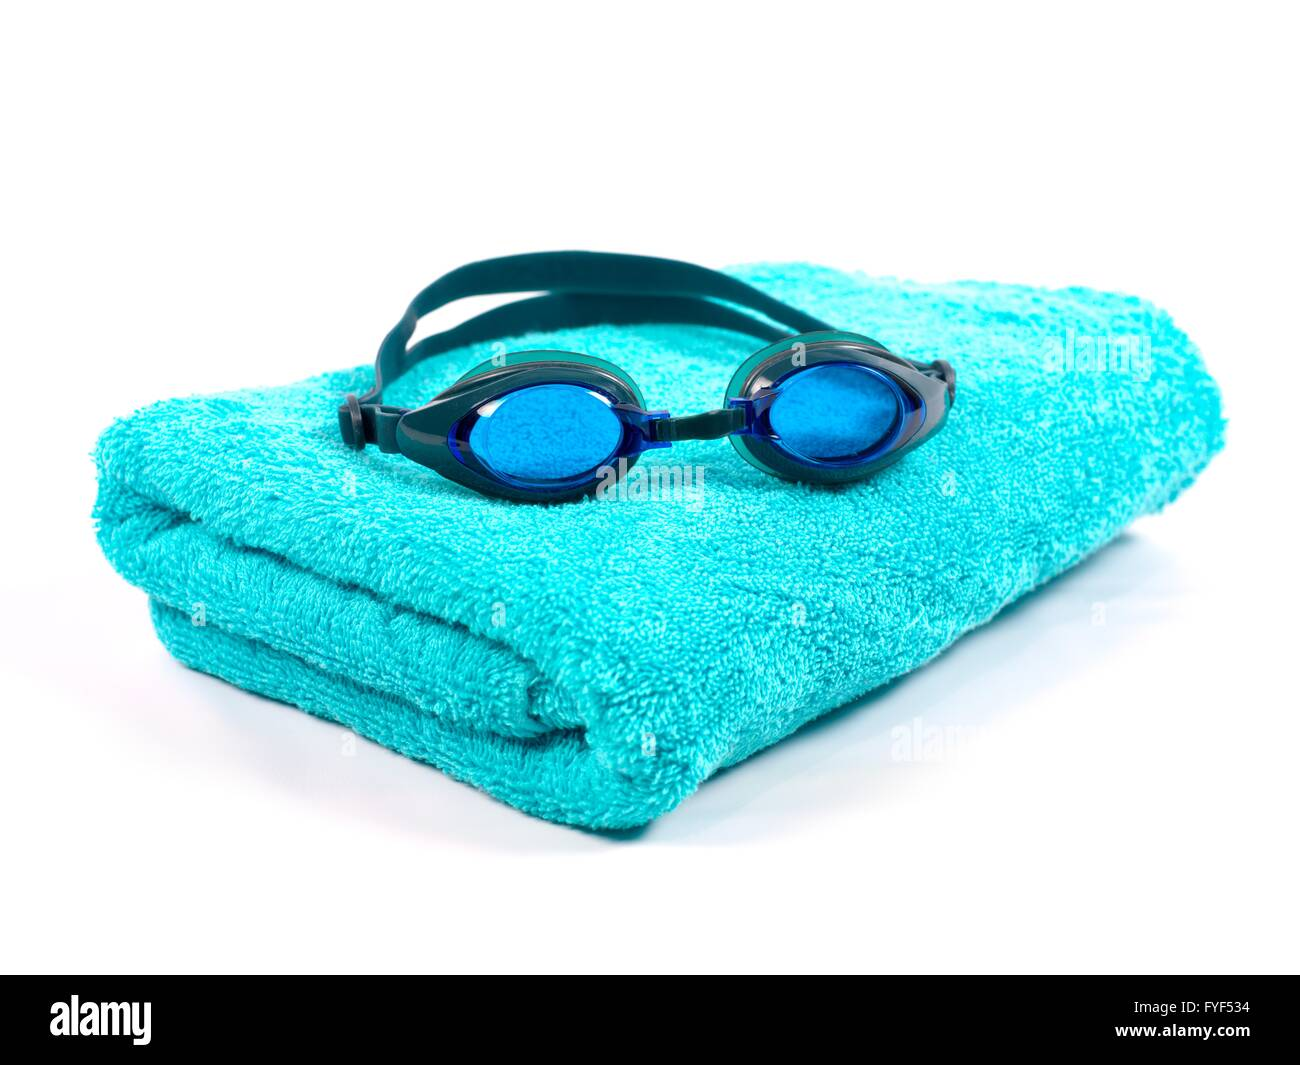 Swimming goggles isolated against a white background - Stock Image